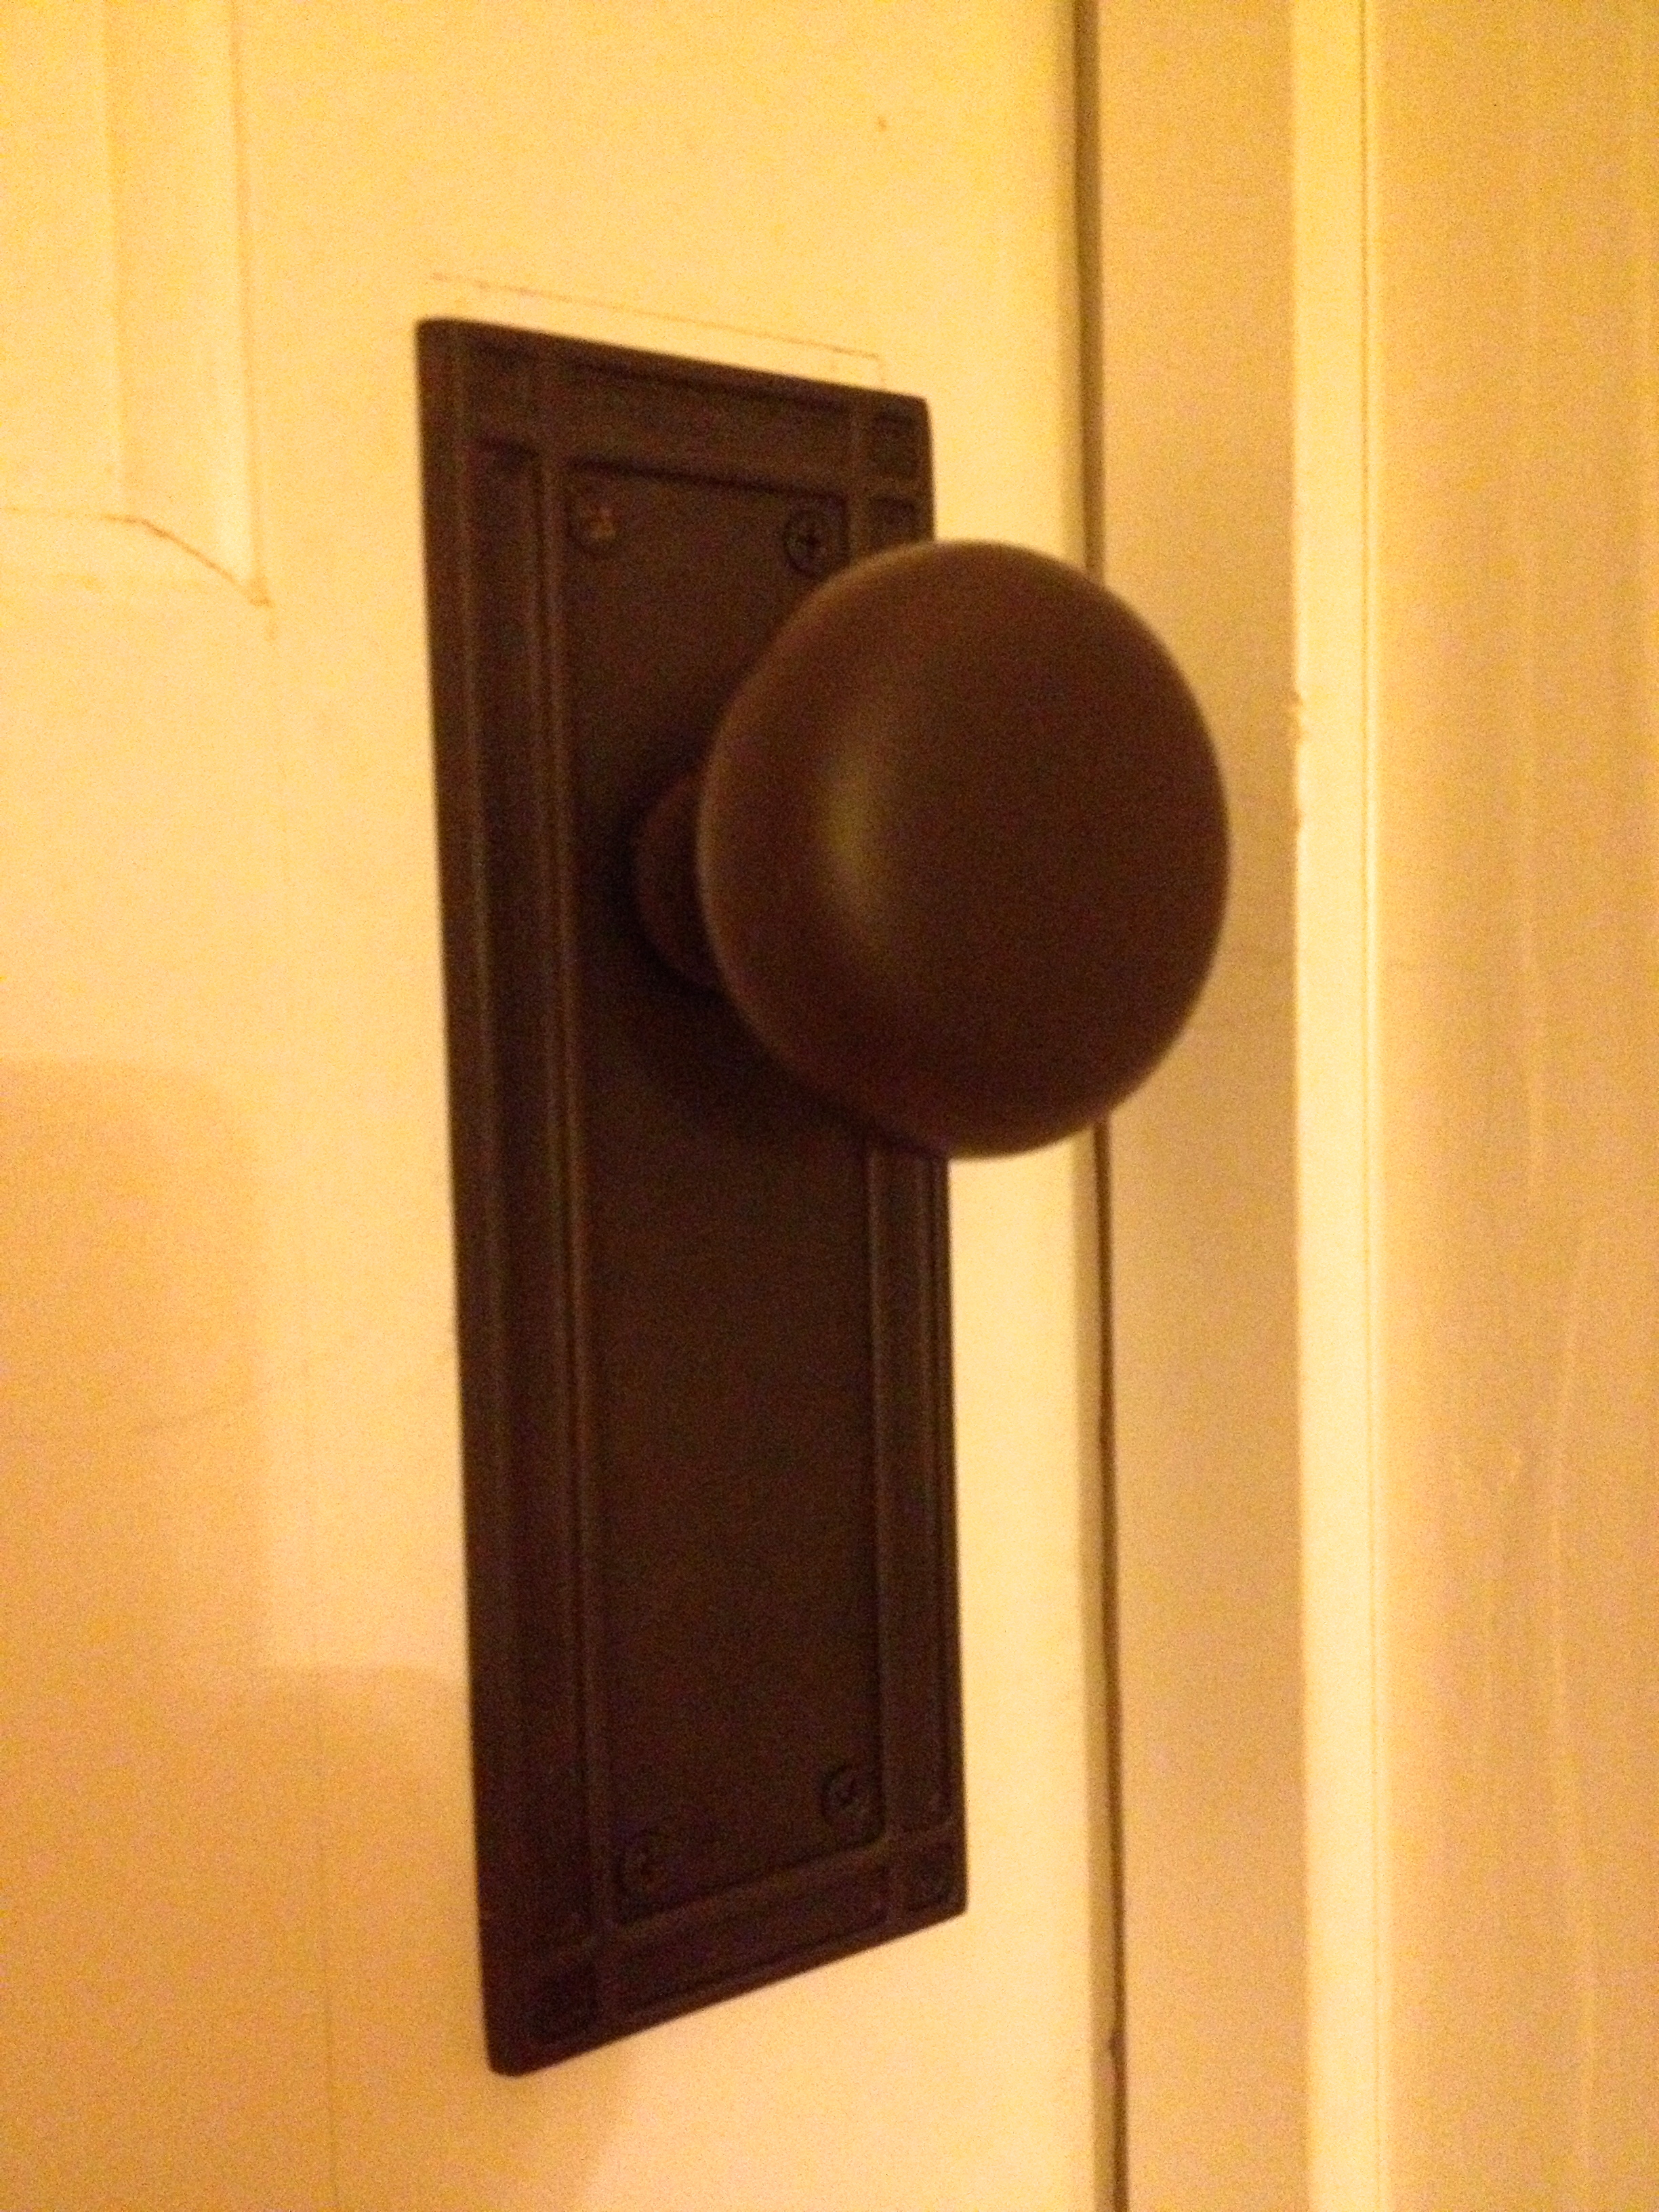 New Doorknob